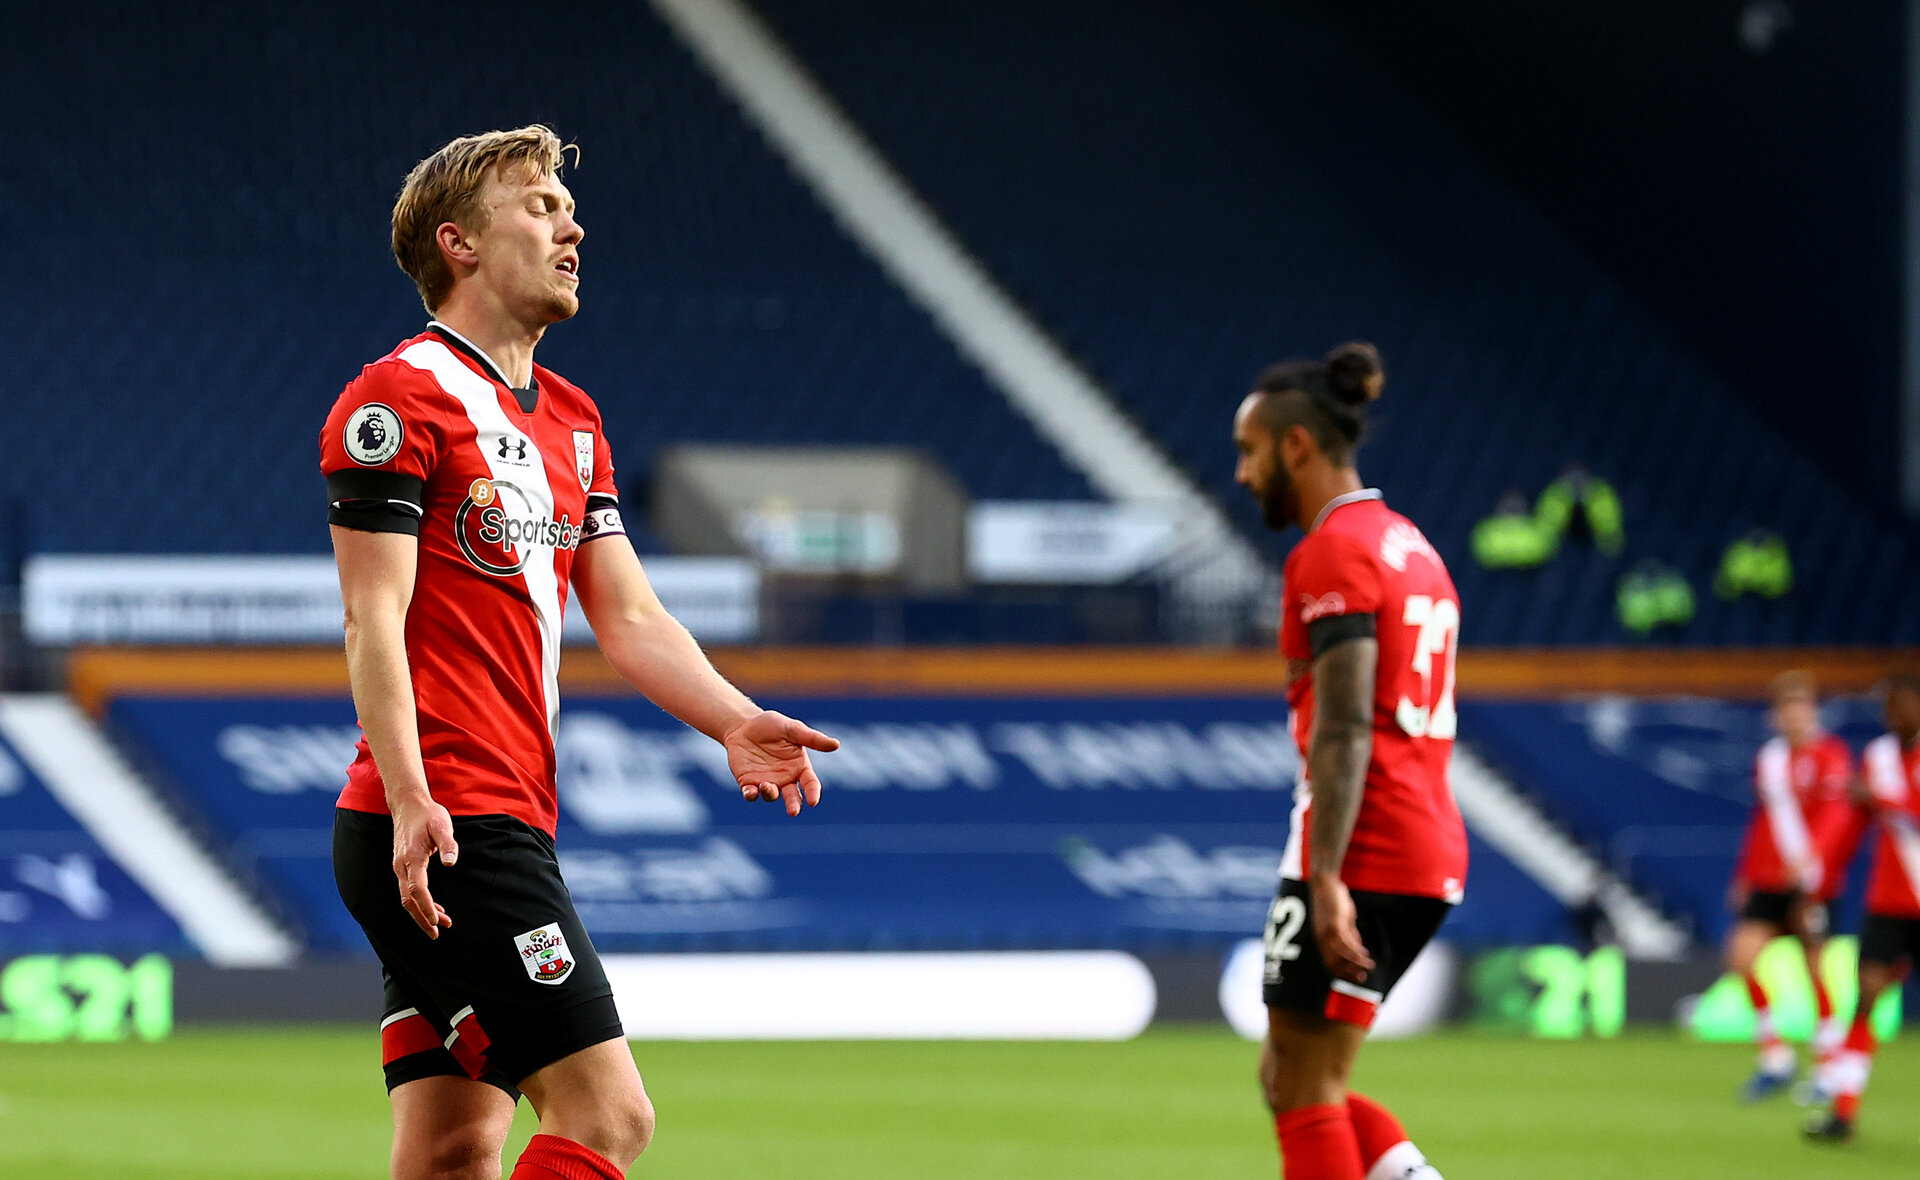 WEST BROMWICH, ENGLAND - APRIL 12: James Ward-Prowse of Southampton dejected during the Premier League match between West Bromwich Albion and Southampton at The Hawthorns on April 12, 2021 in West Bromwich, England. Sporting stadiums around the UK remain under strict restrictions due to the Coronavirus Pandemic as Government social distancing laws prohibit fans inside venues resulting in games being played behind closed doors. (Photo by Matt Watson/Southampton FC via Getty Images)